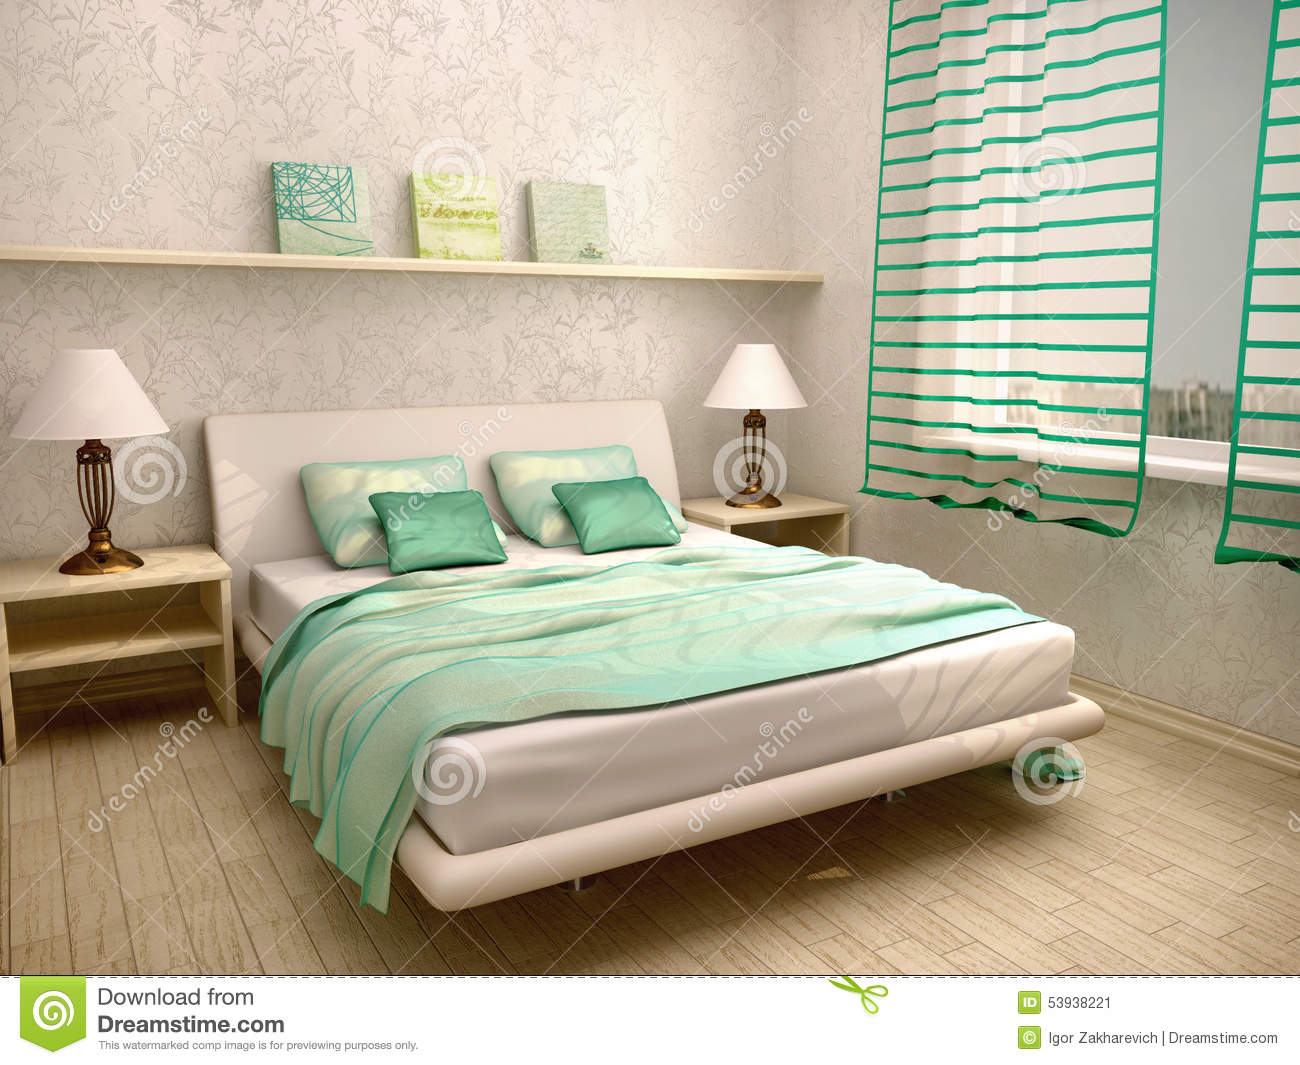 Illustration Of Bedroom Interior In A Light Turquoise ...